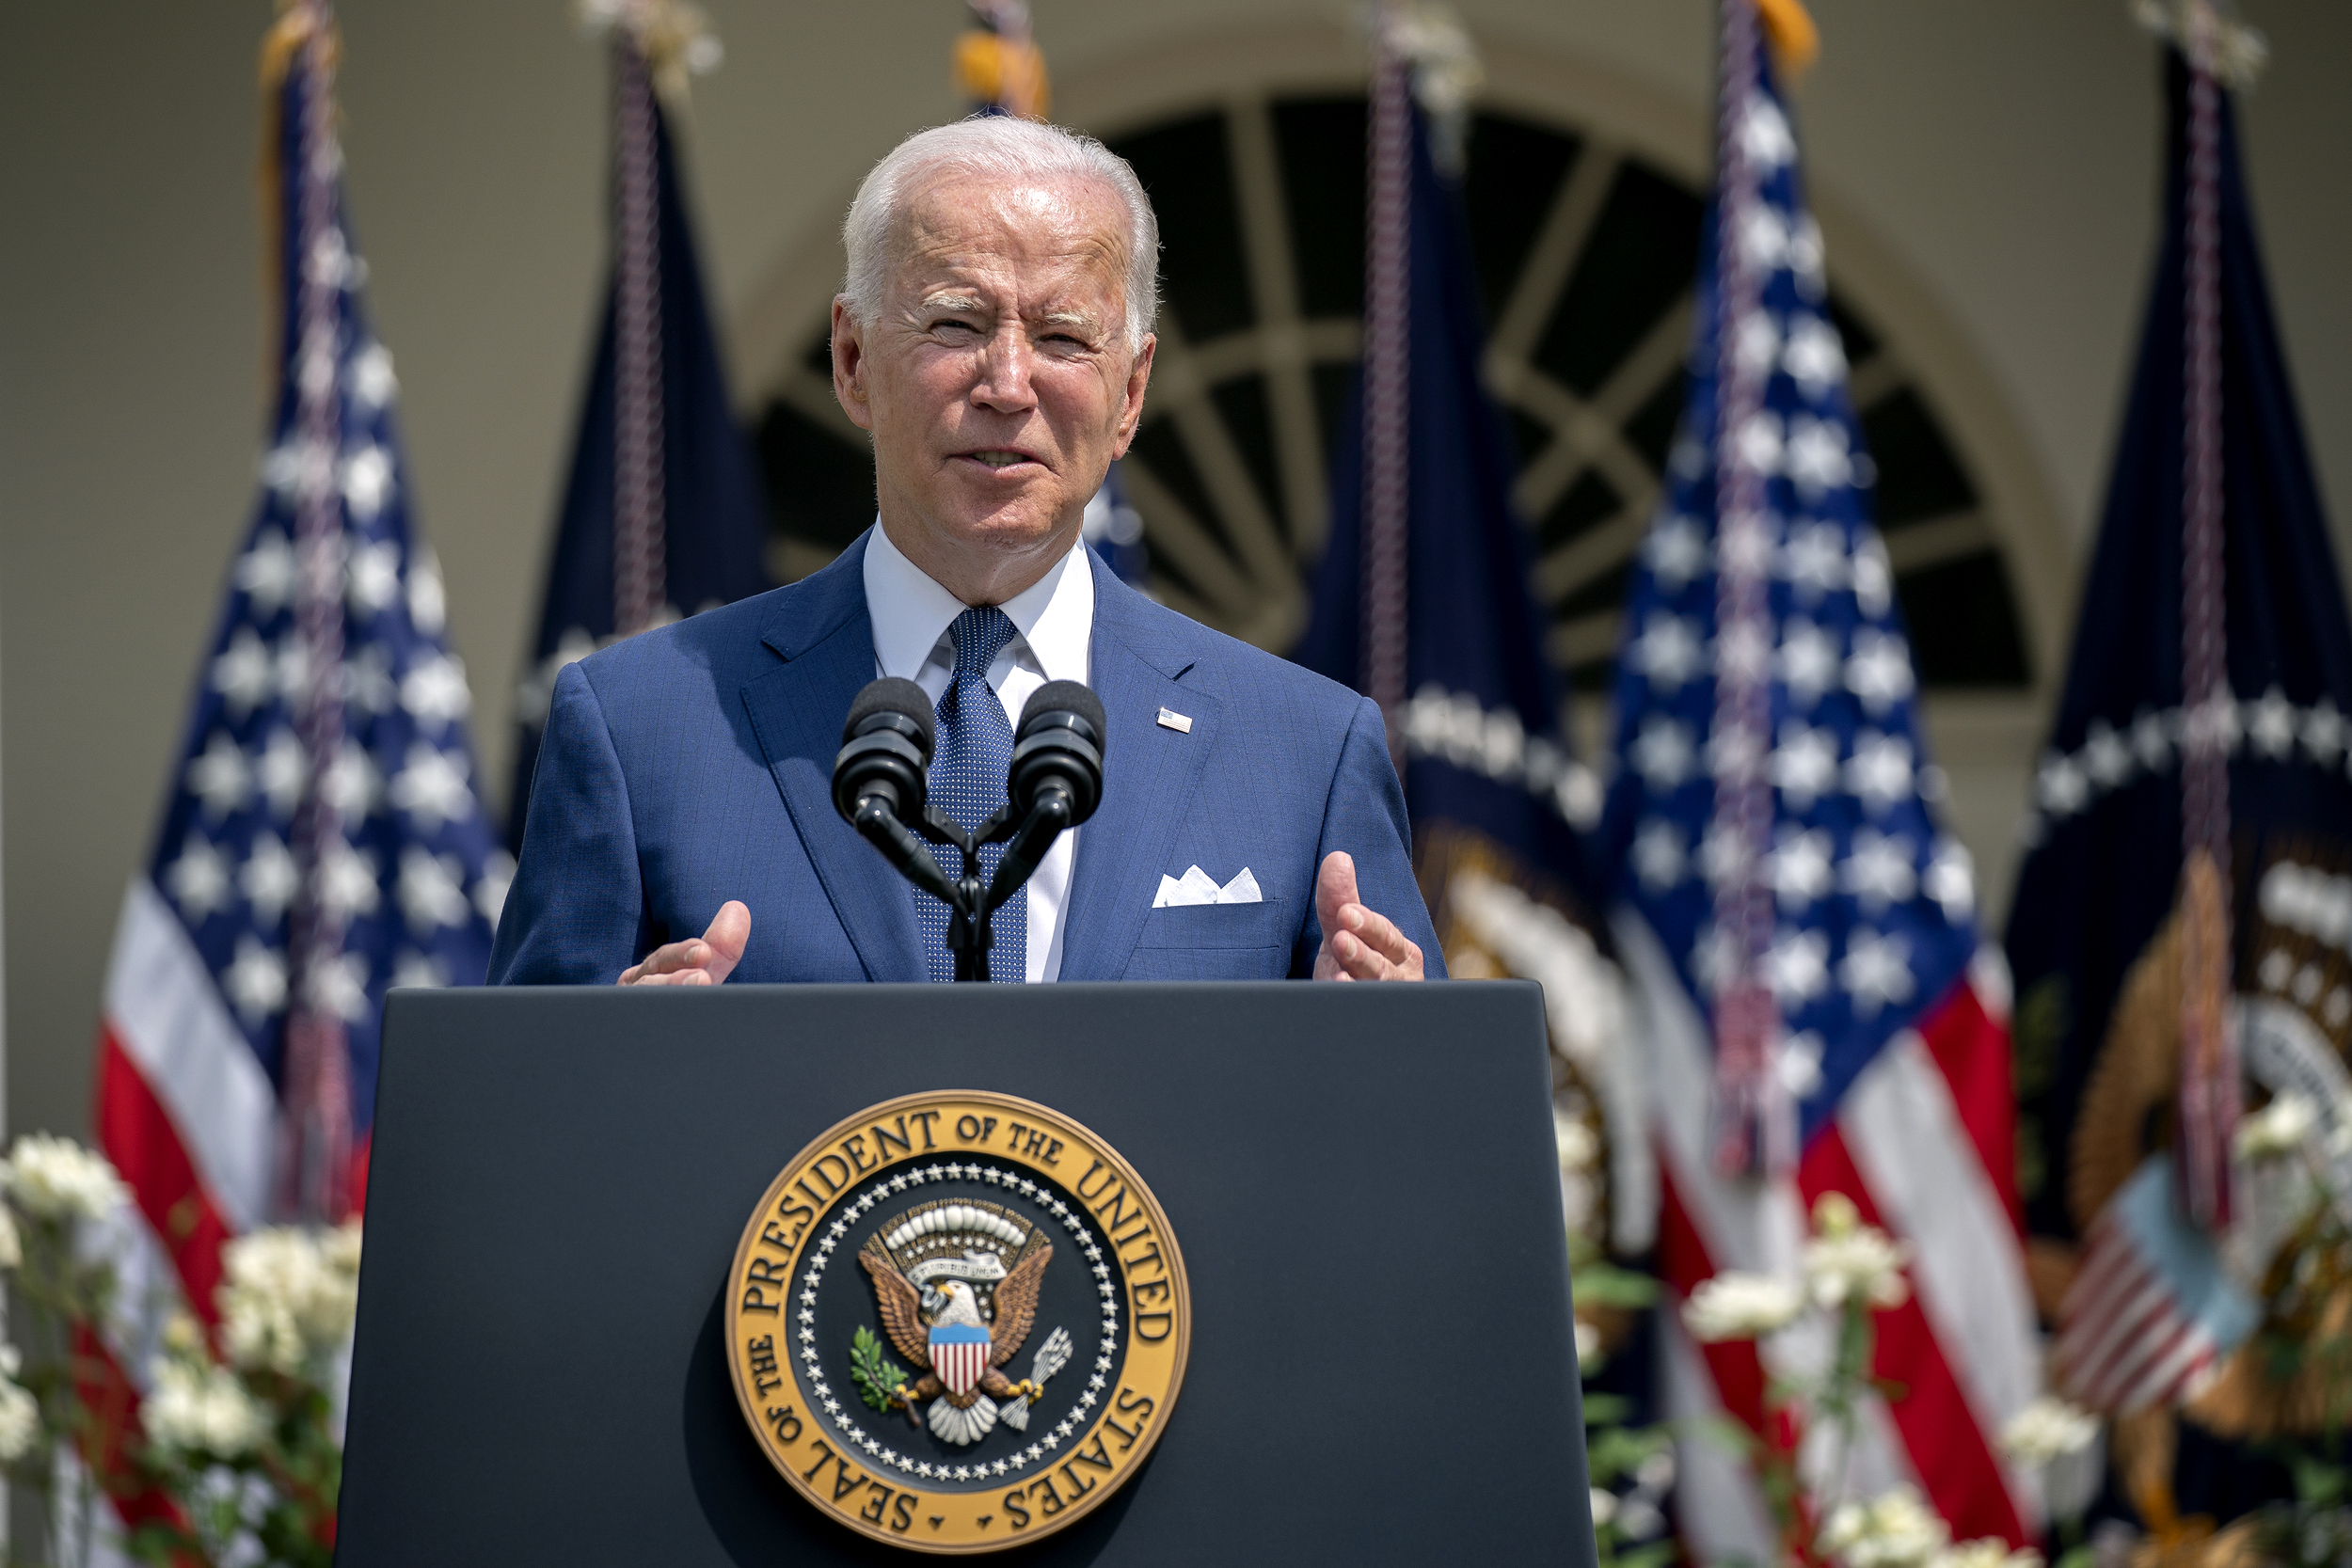 Biden says 'long Covid' could qualify as a disability under federal law